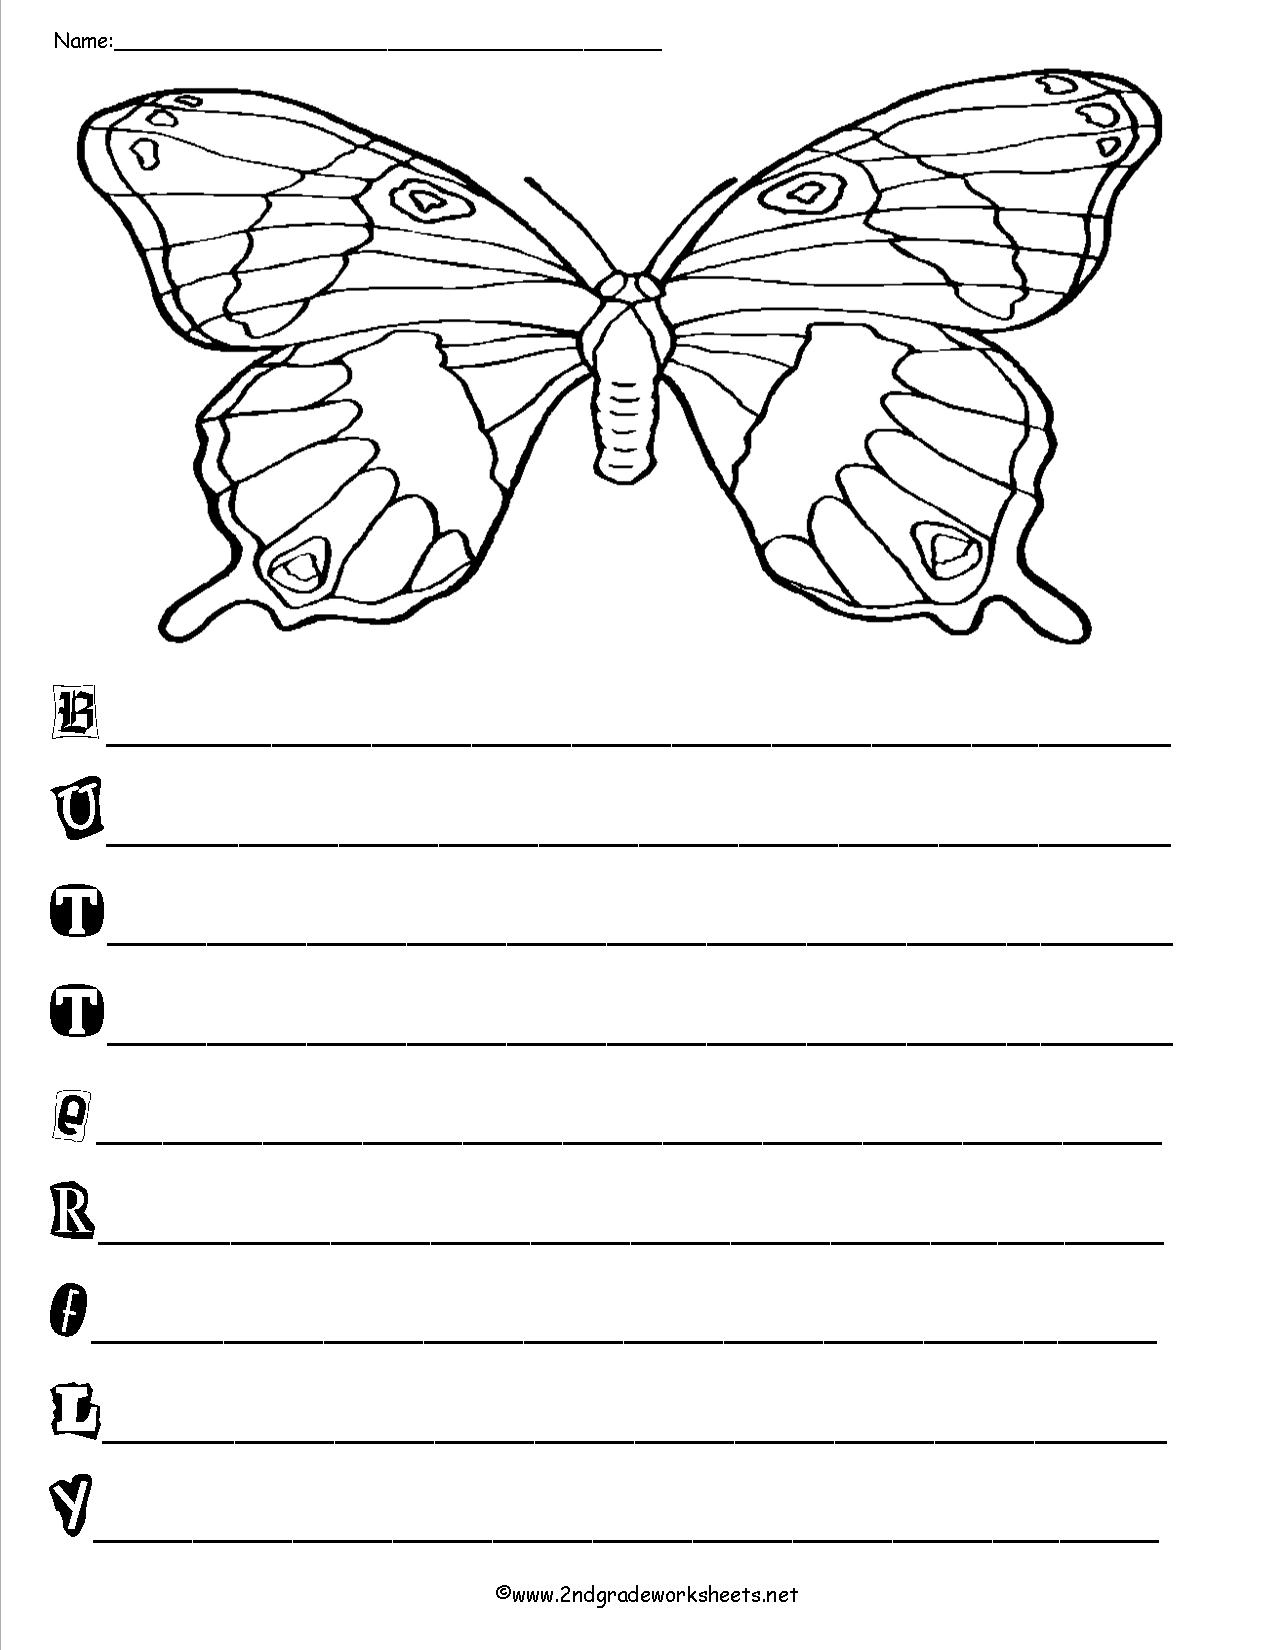 Acrostic Poem Forms, Templates, and Worksheets